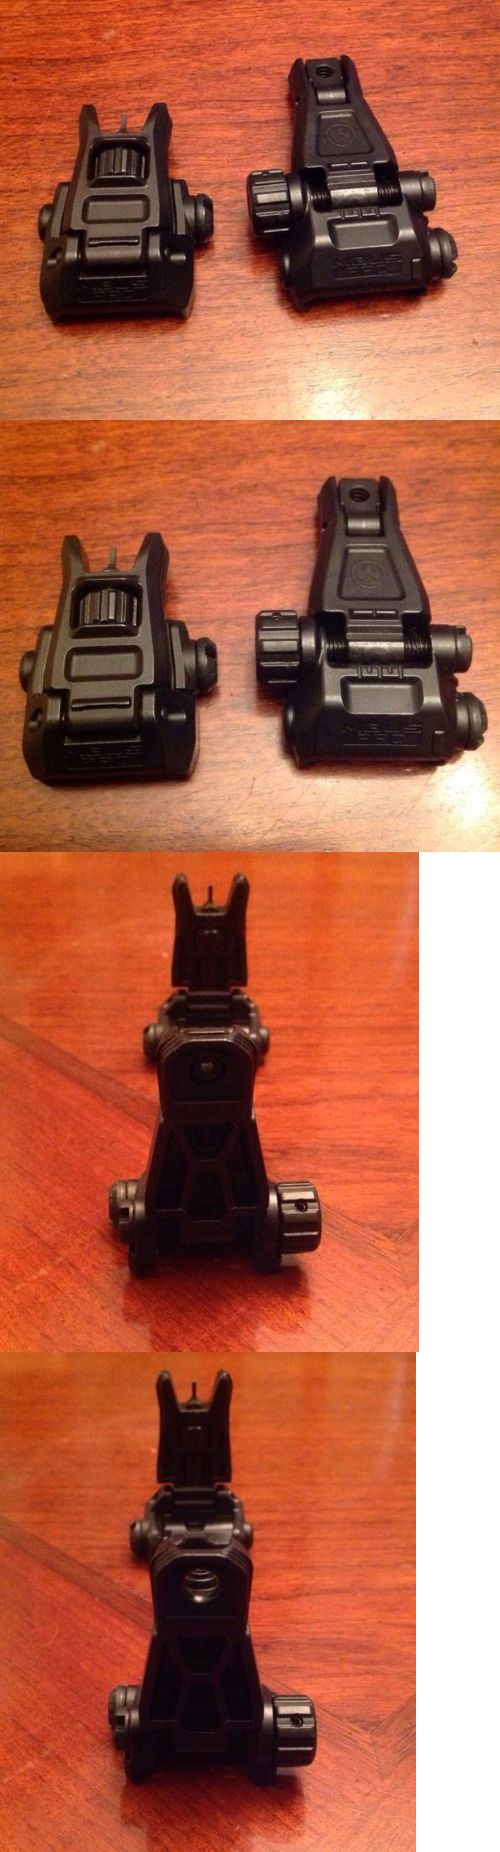 Other Hunting Scopes and Optics 7307: Magpul Mbus Pro Front And Rear Flip Up Backup Sight Set New Without Original Box -> BUY IT NOW ONLY: $139.99 on eBay!